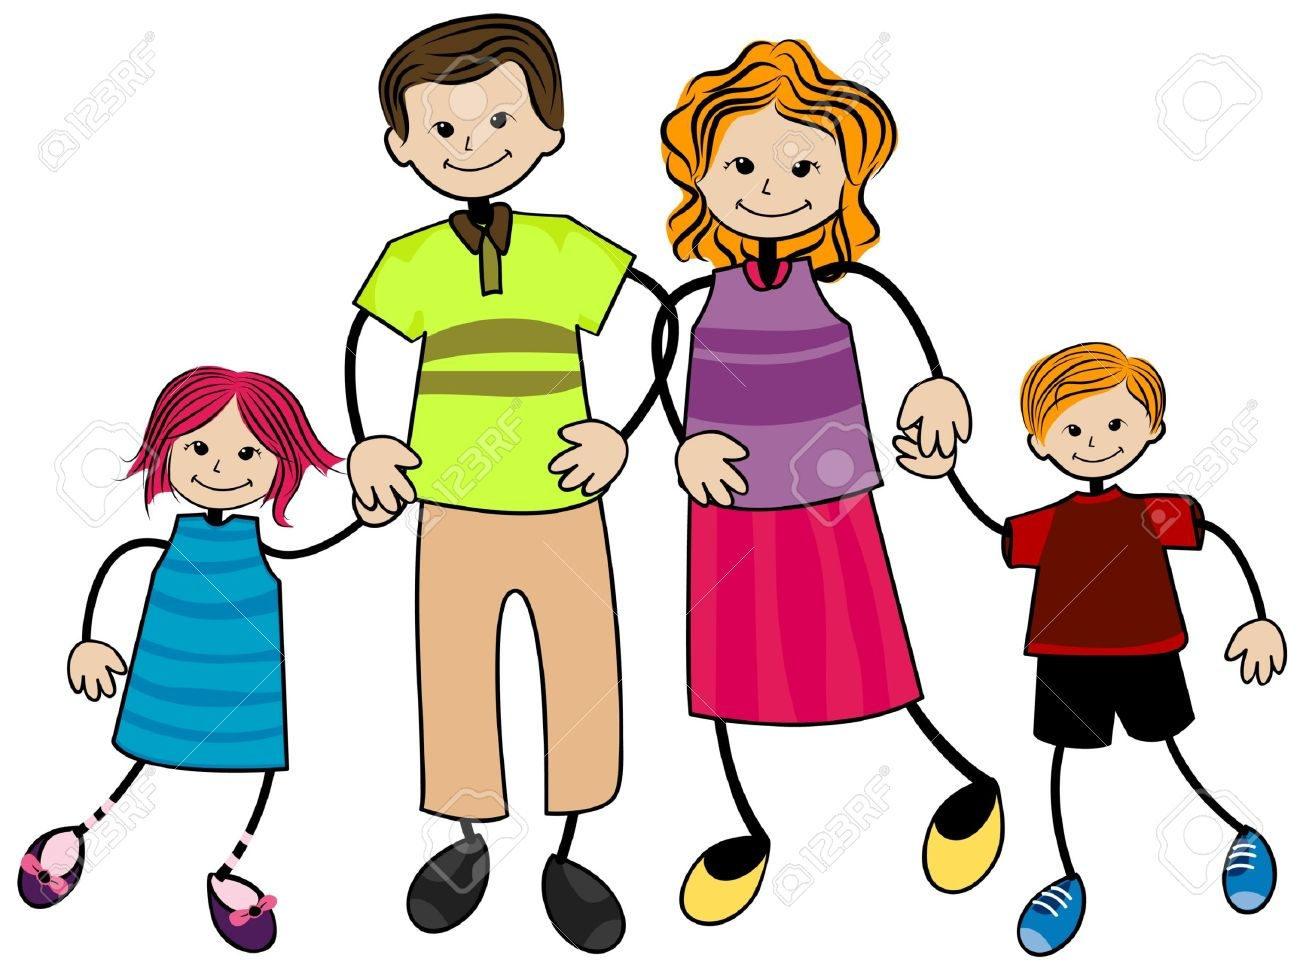 88+ Family Clipart Images.